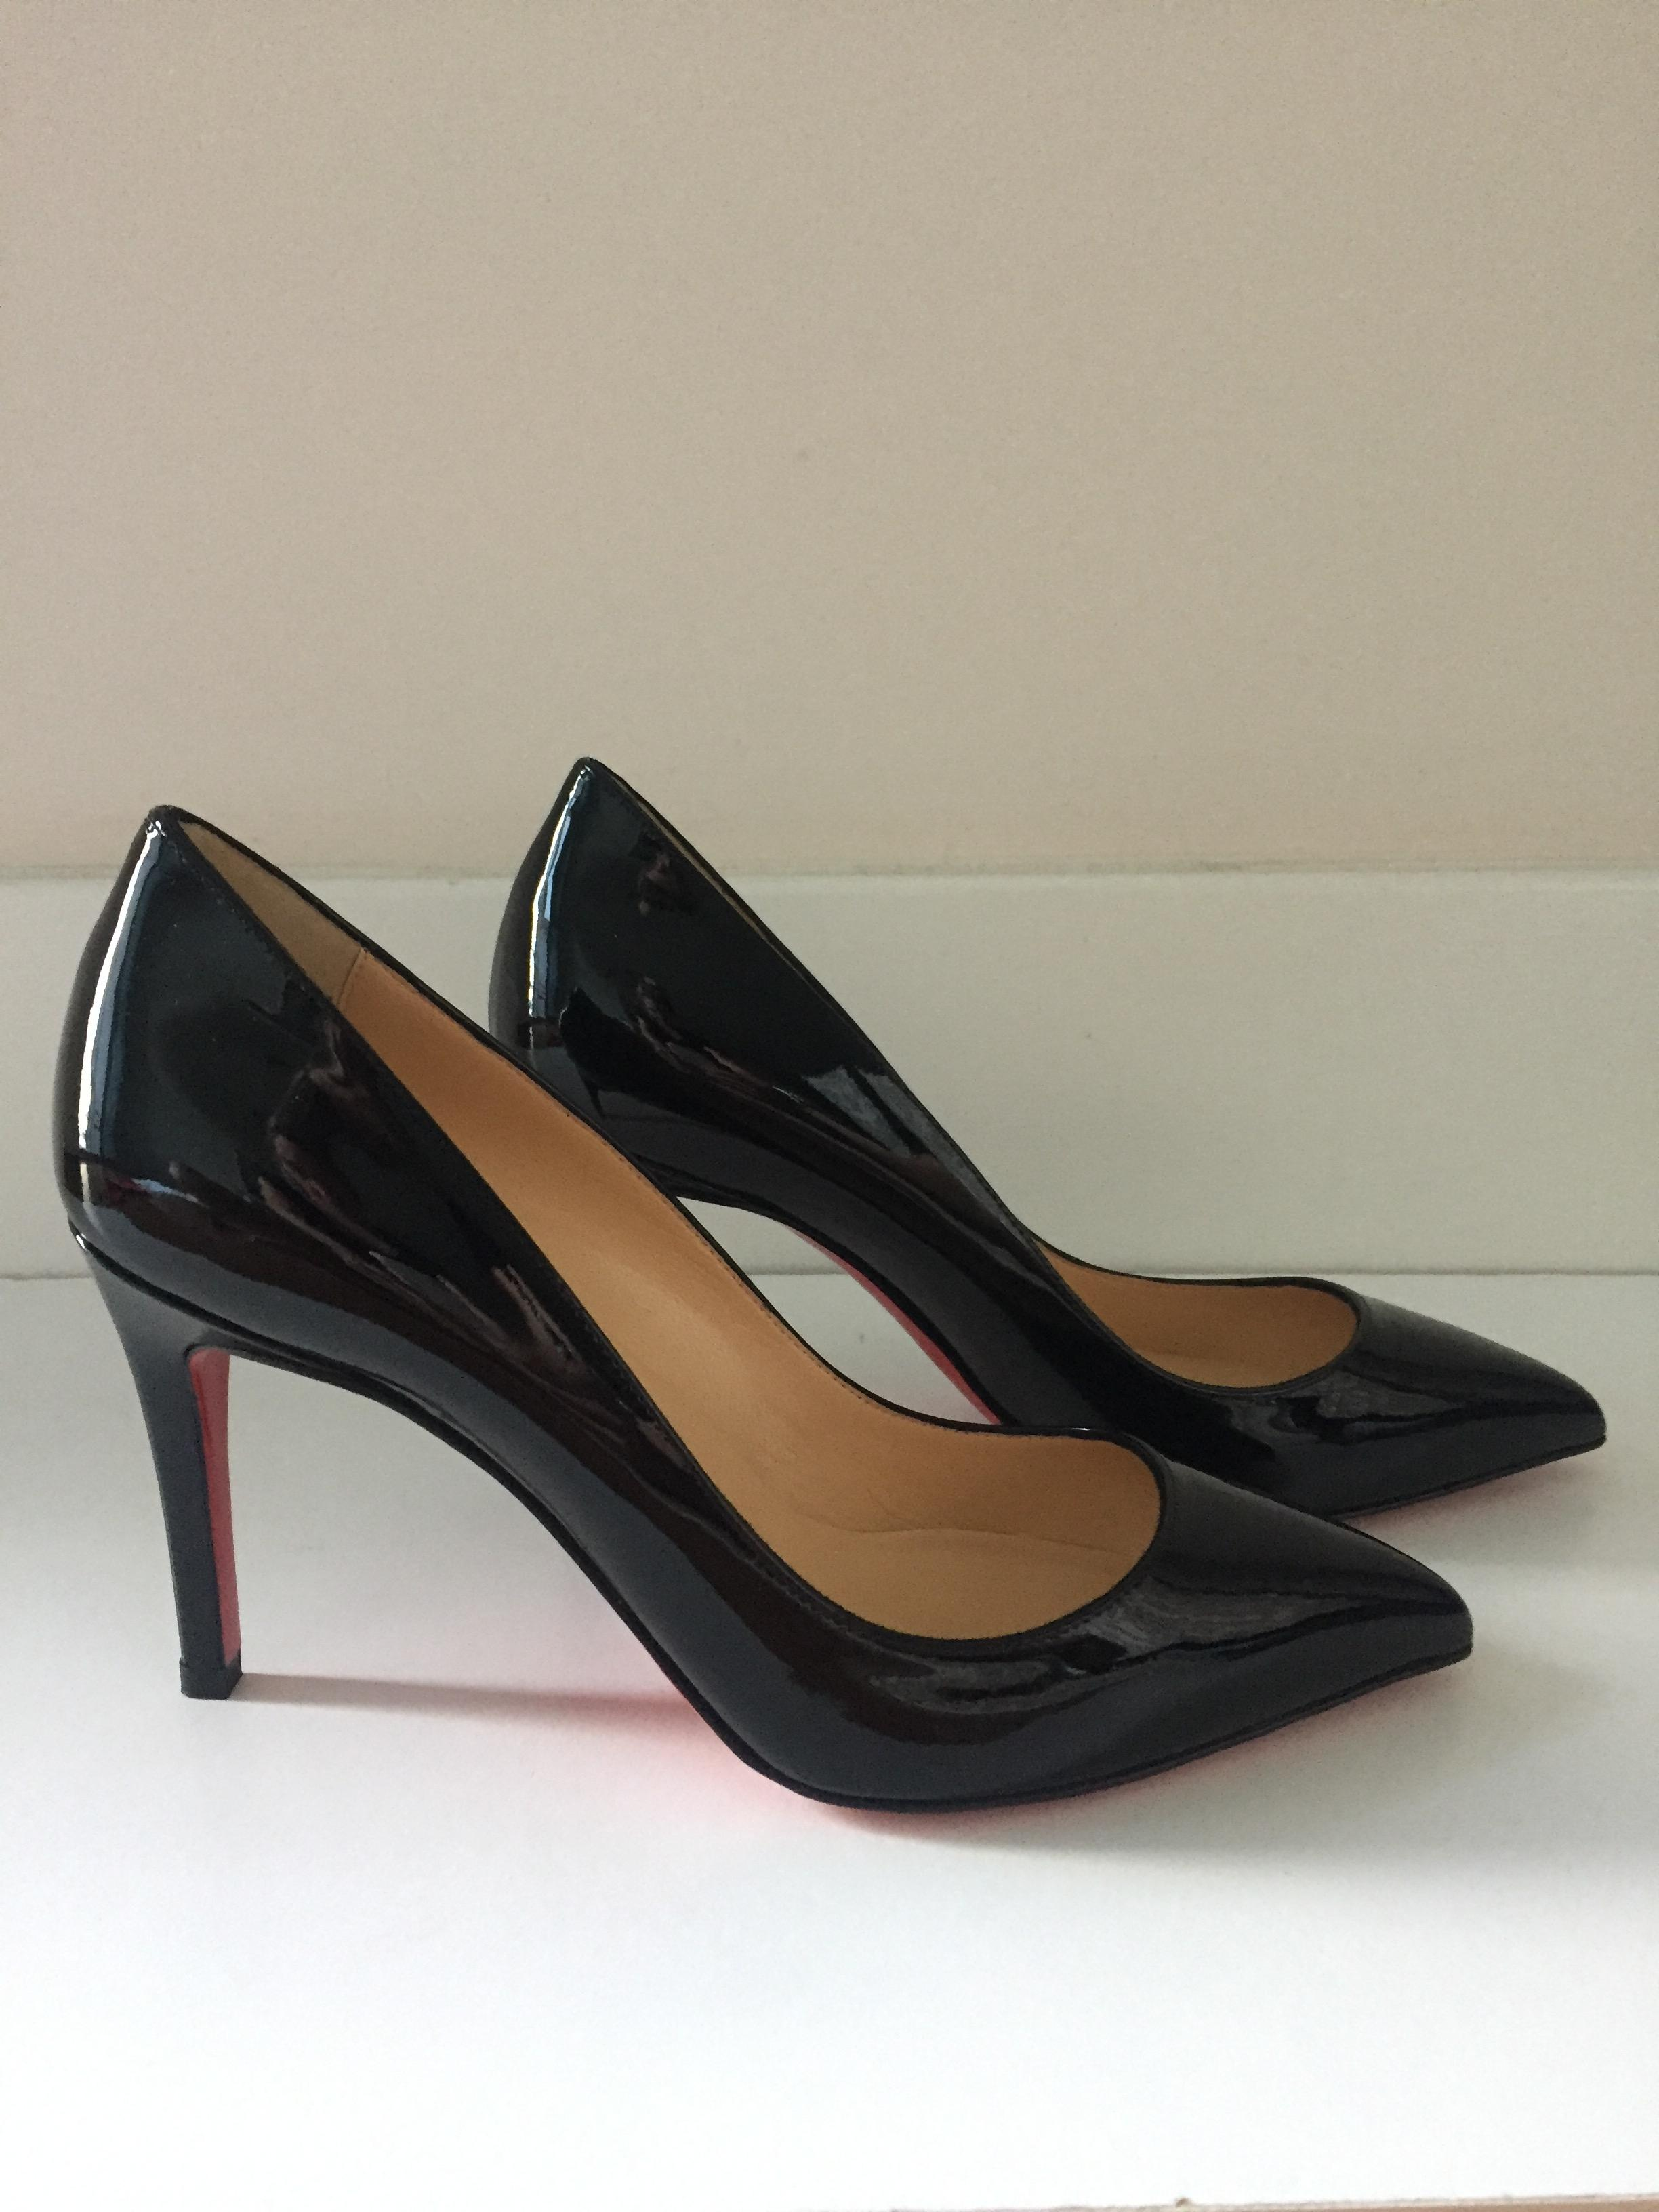 d51a2791f179 Christian Louboutin Black Pigalle Follies Patent Patent Patent 85mm Pumps  Size EU 41 (Approx.